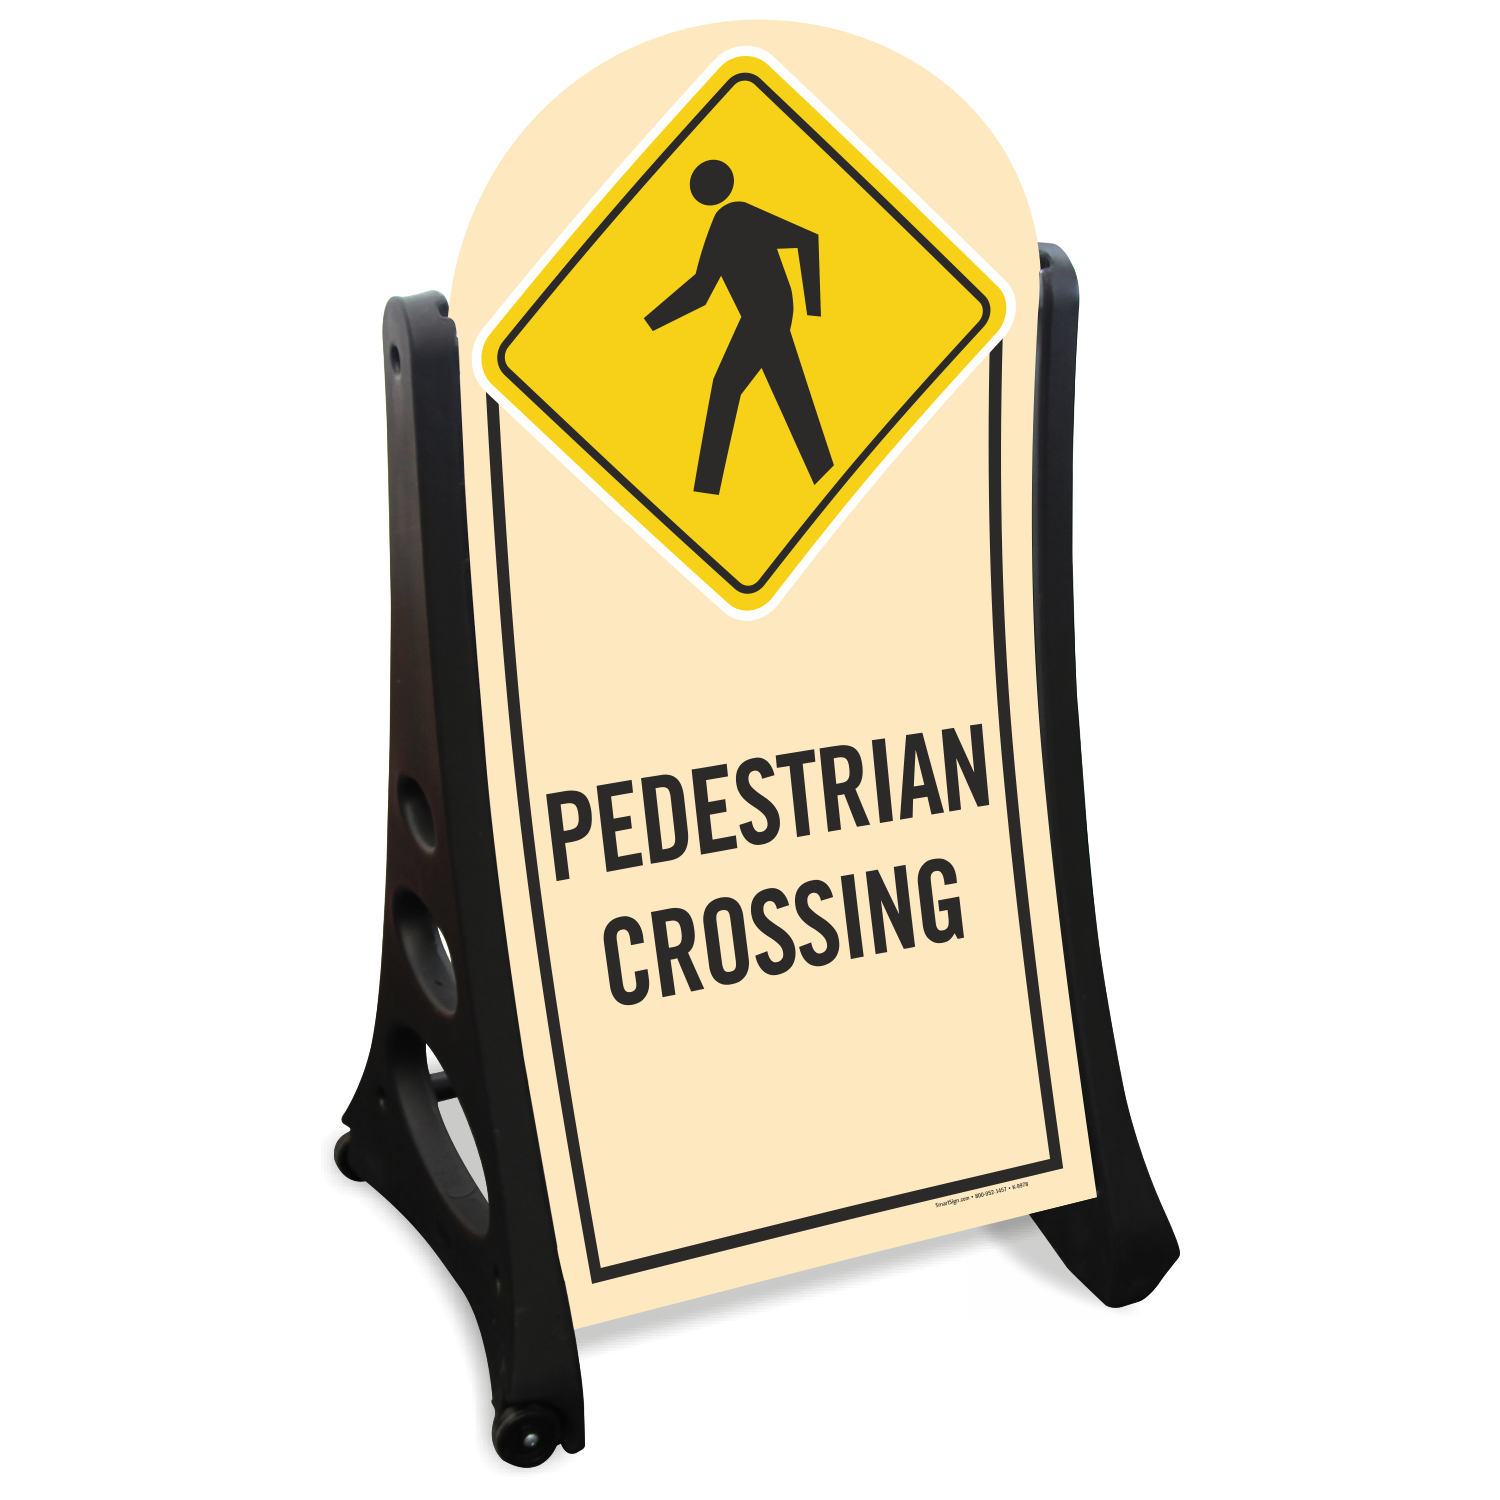 pedestrian crossing signs ped xing